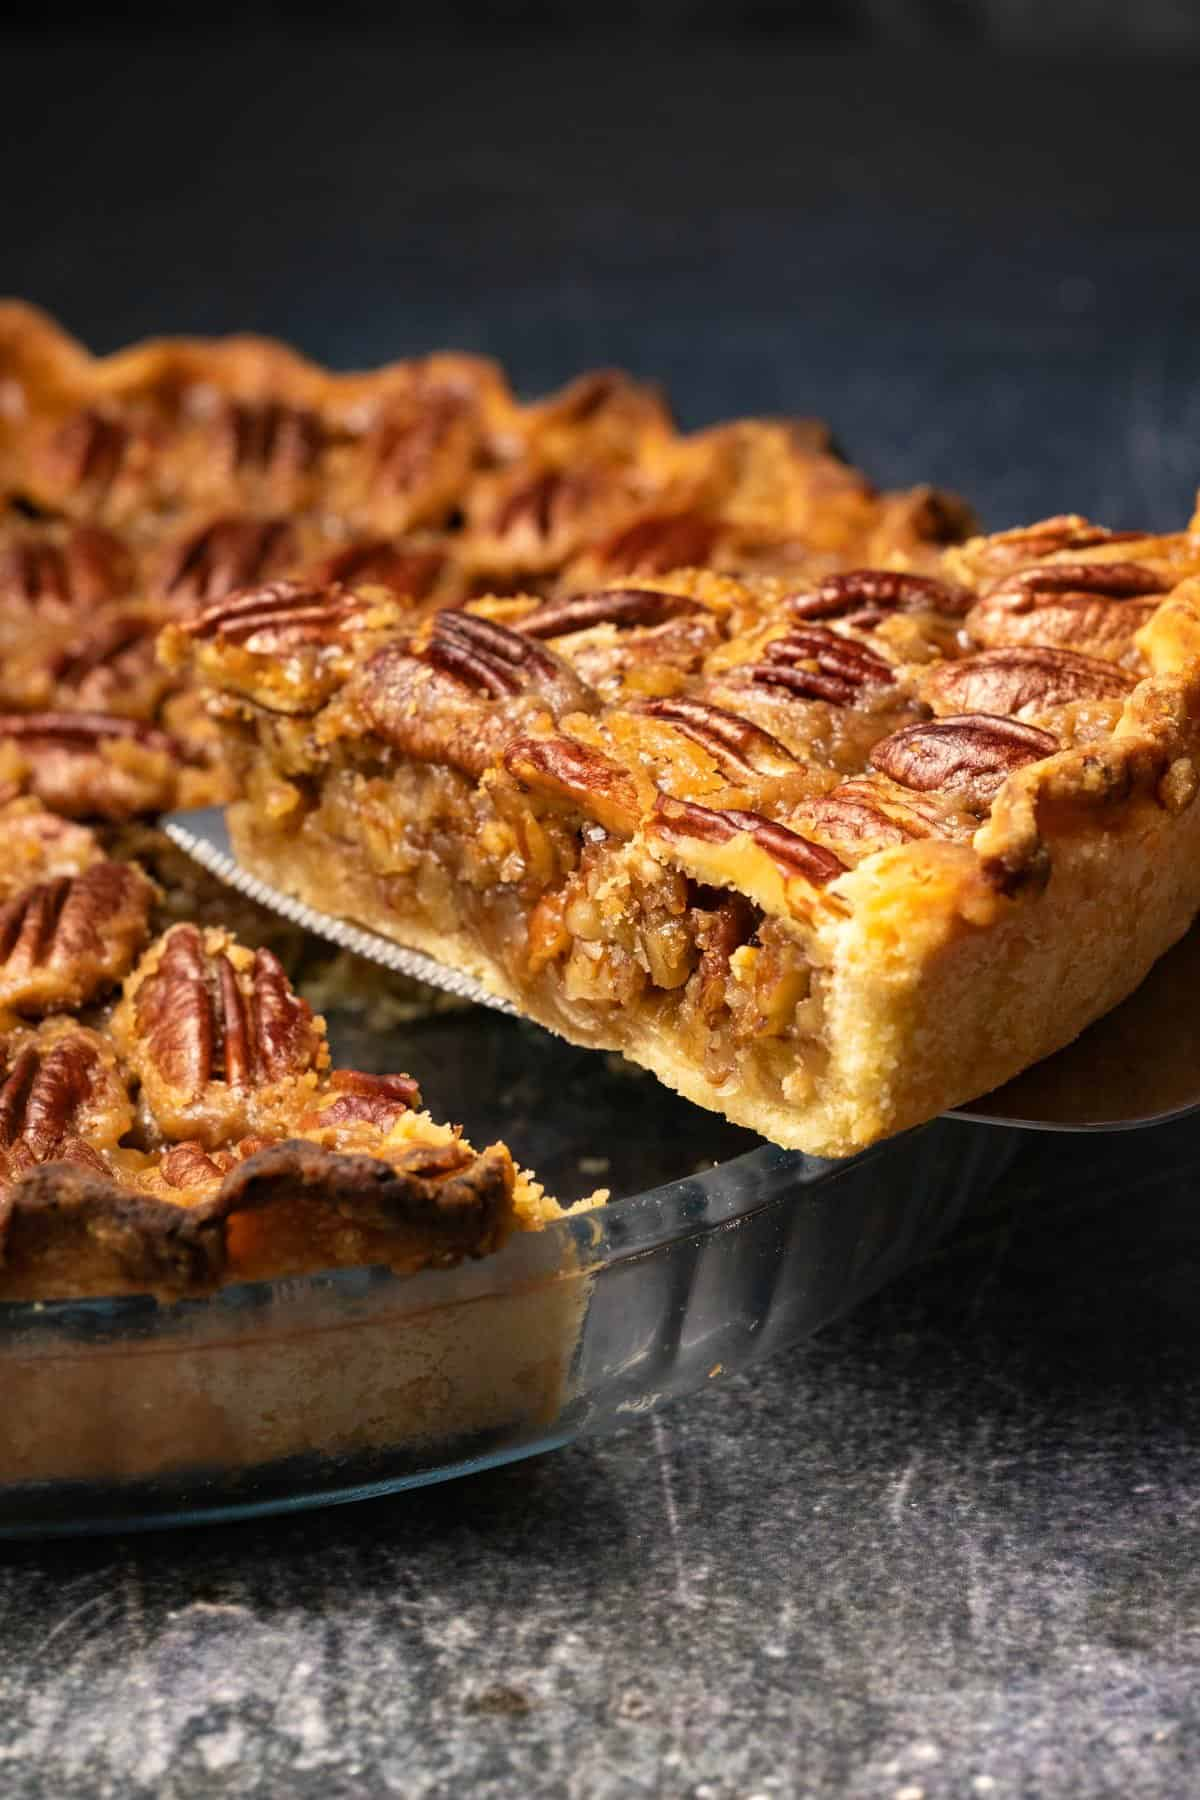 Vegan pecan pie in a glass pie dish with one slice cut and ready to serve.